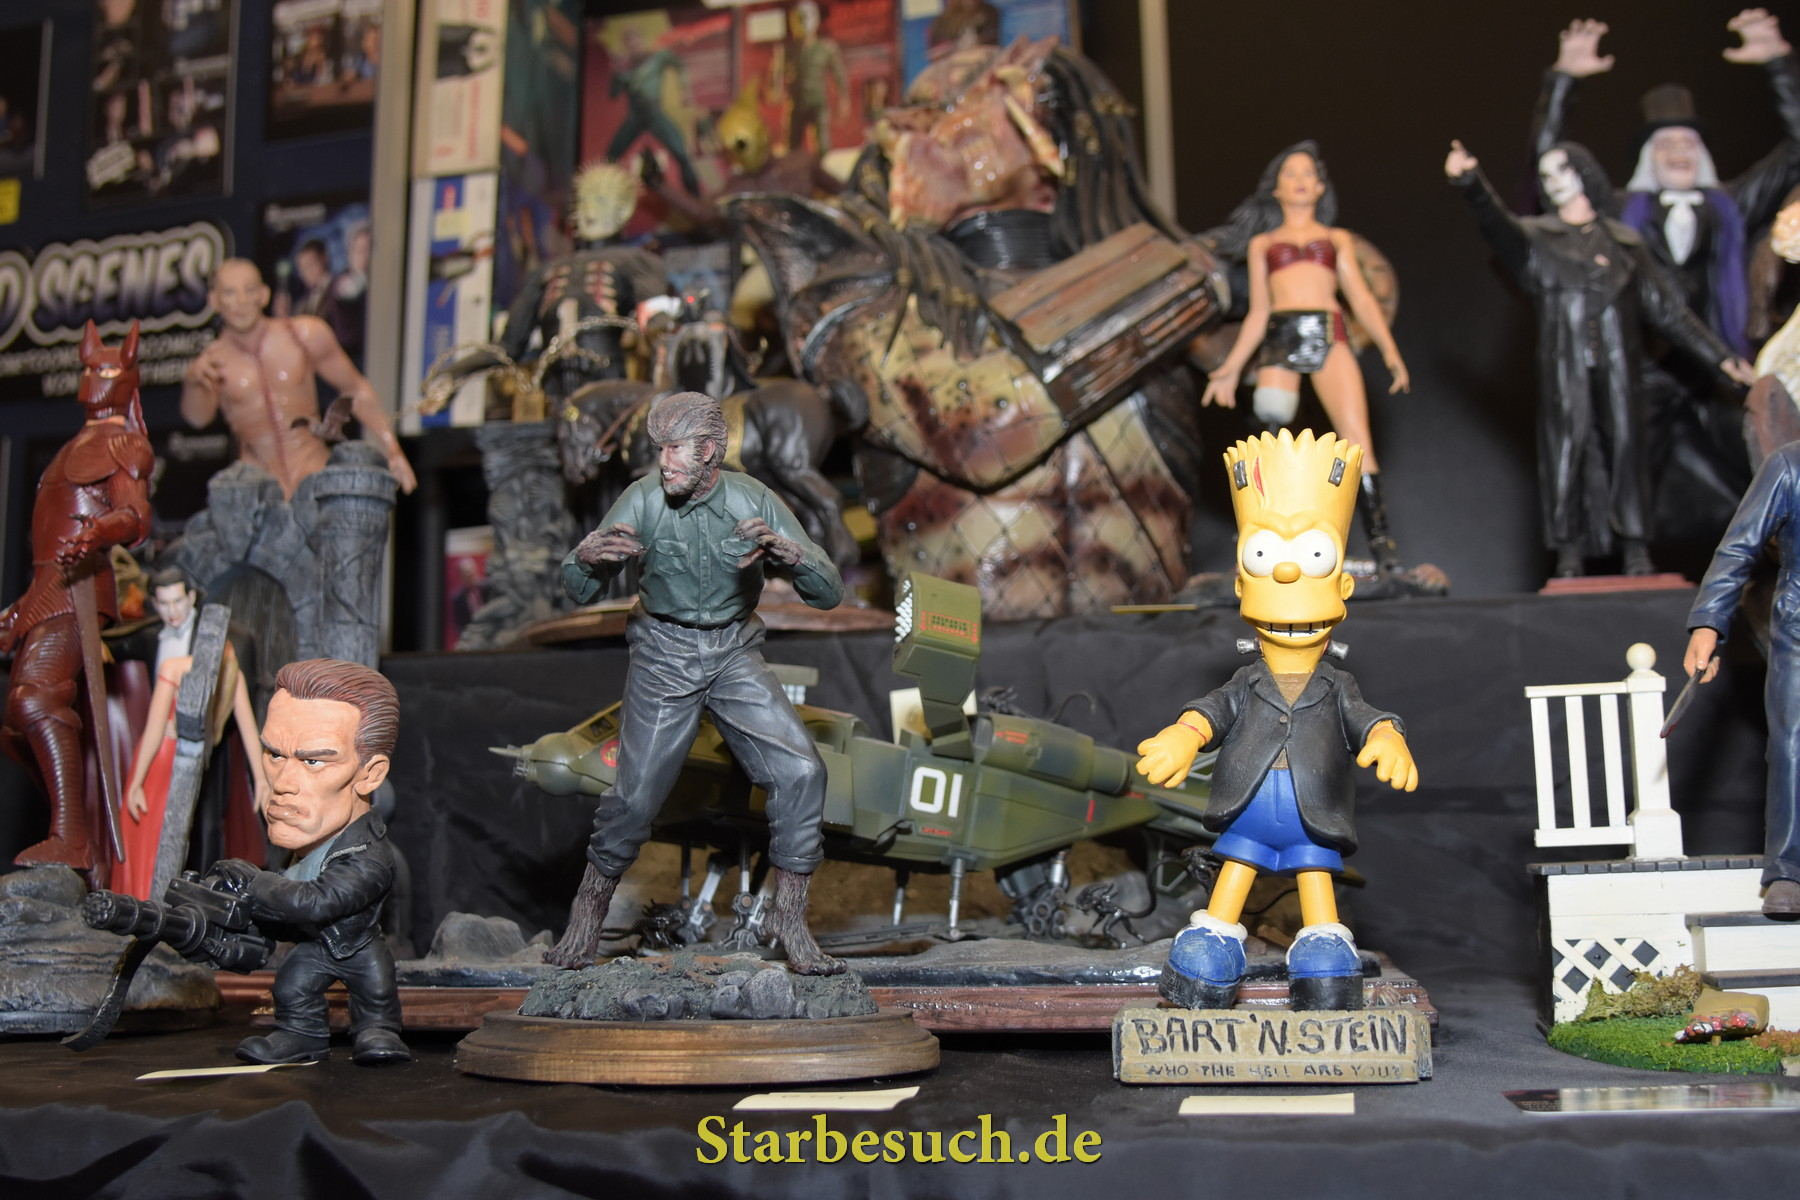 Dortmund, Germany - December 9th 2017: Impression from German Comic Con Dortmund: Statues at Vendor Booth. More than 30 celebrities attended the event to meet their fans, sign autographs and do photoshoots.